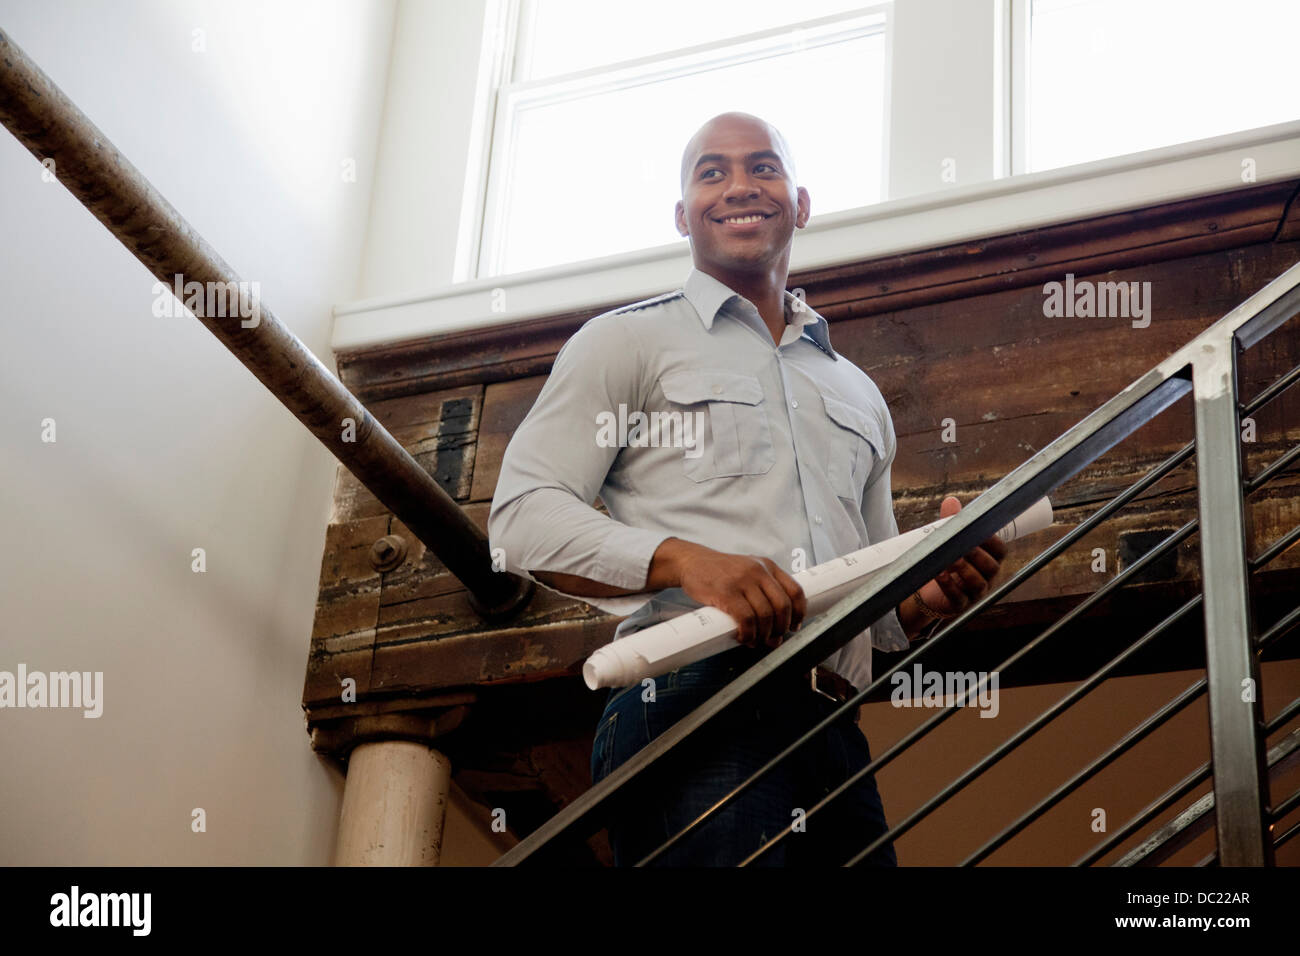 Mid adult man holding rolled up plans on staircase, smiling - Stock Image